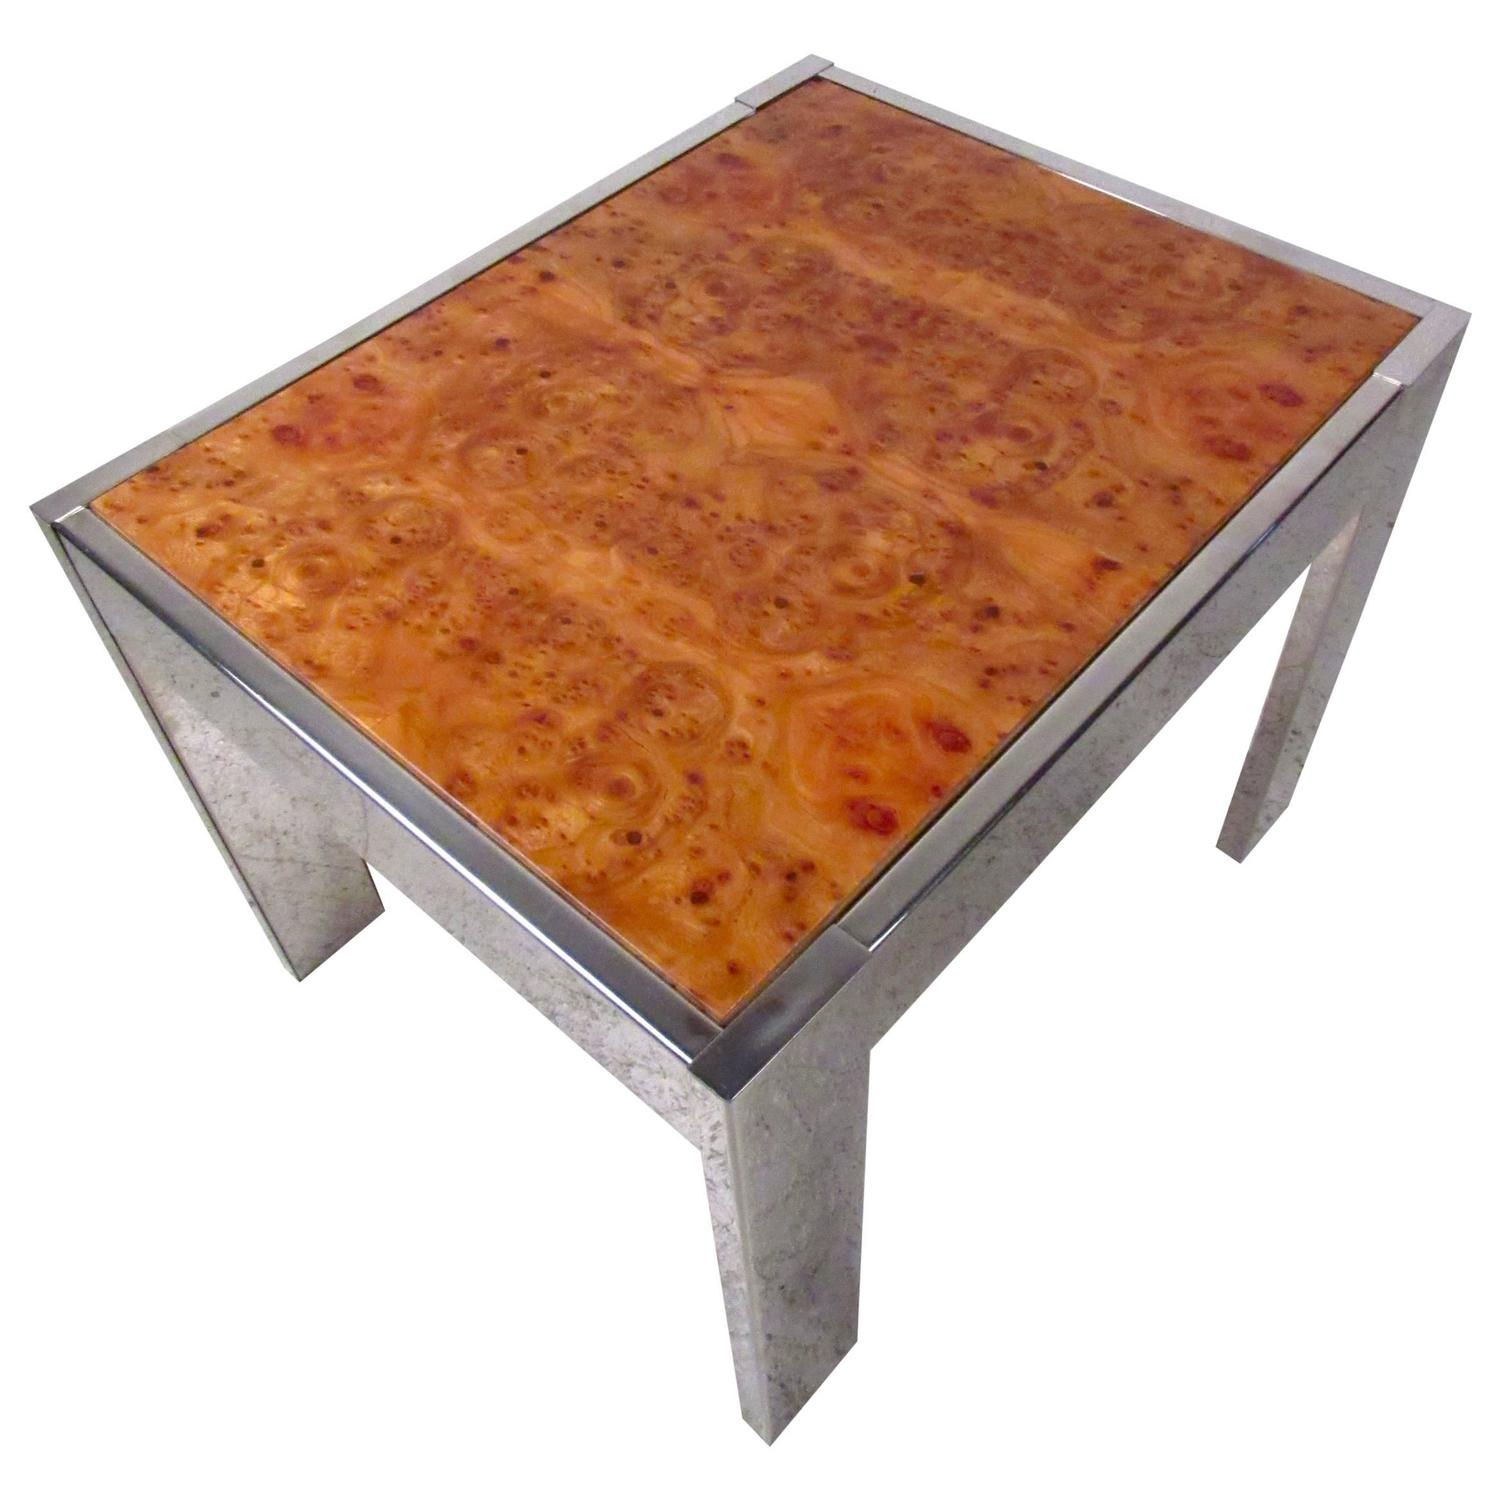 Burl Coffee Table: Milo Baughman Inspired Burl Wood Coffee Table For Sale At